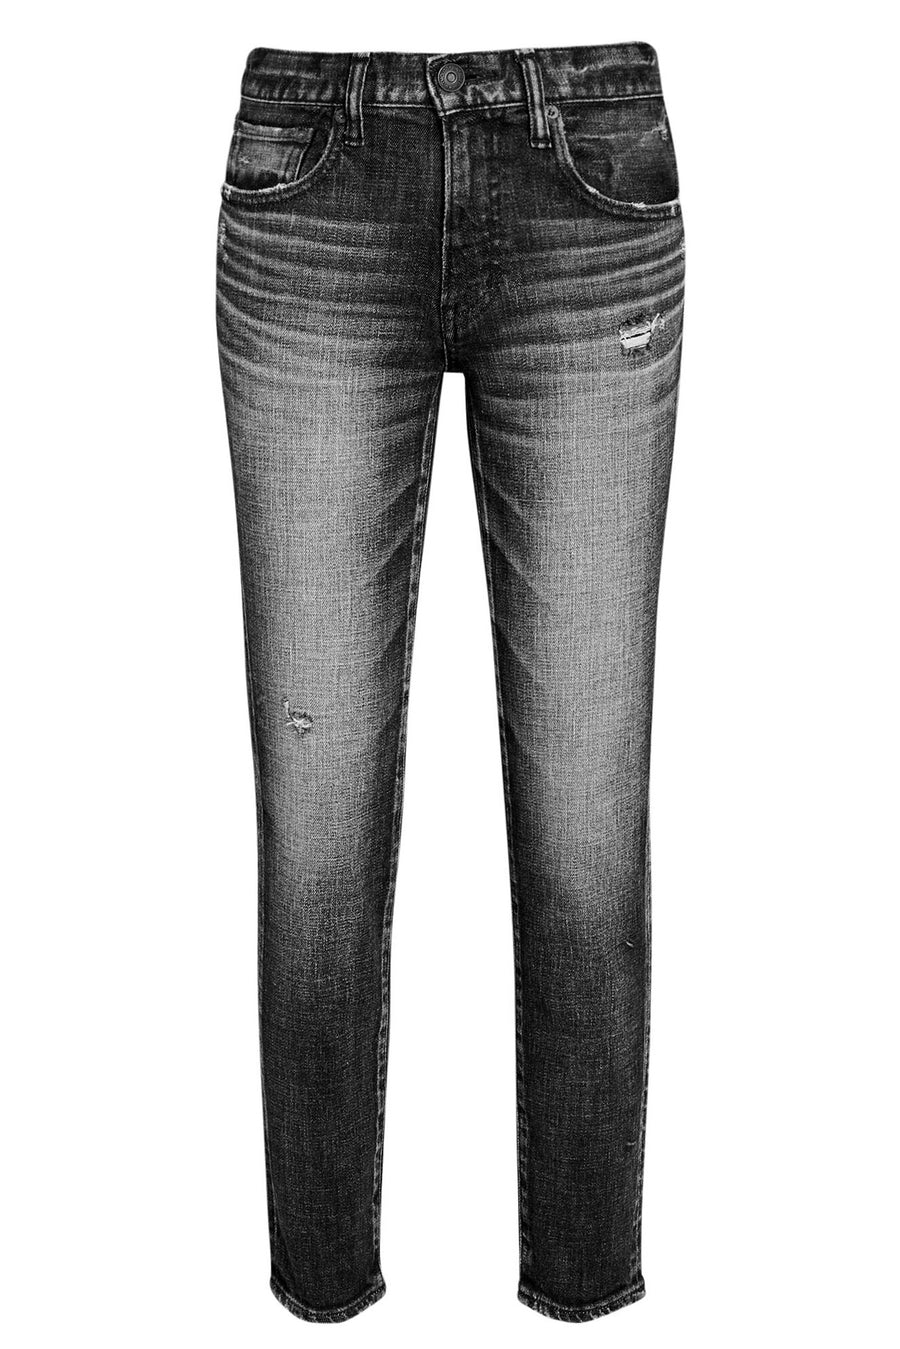 Prichard Skinny - Black